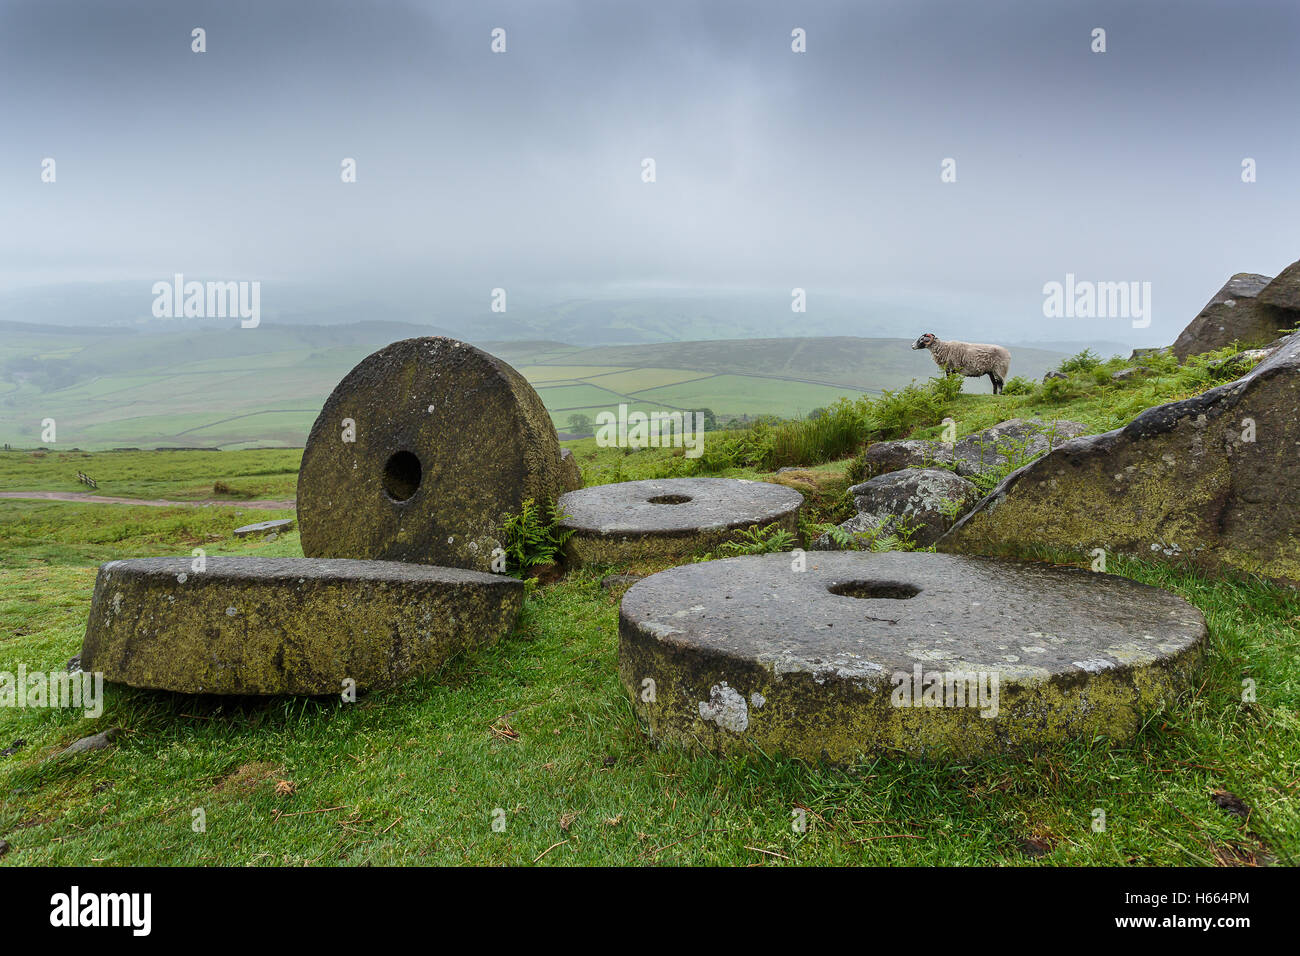 A lone sheep amongst the millstones at the popular climbing location of Stanage Edge - Stock Image